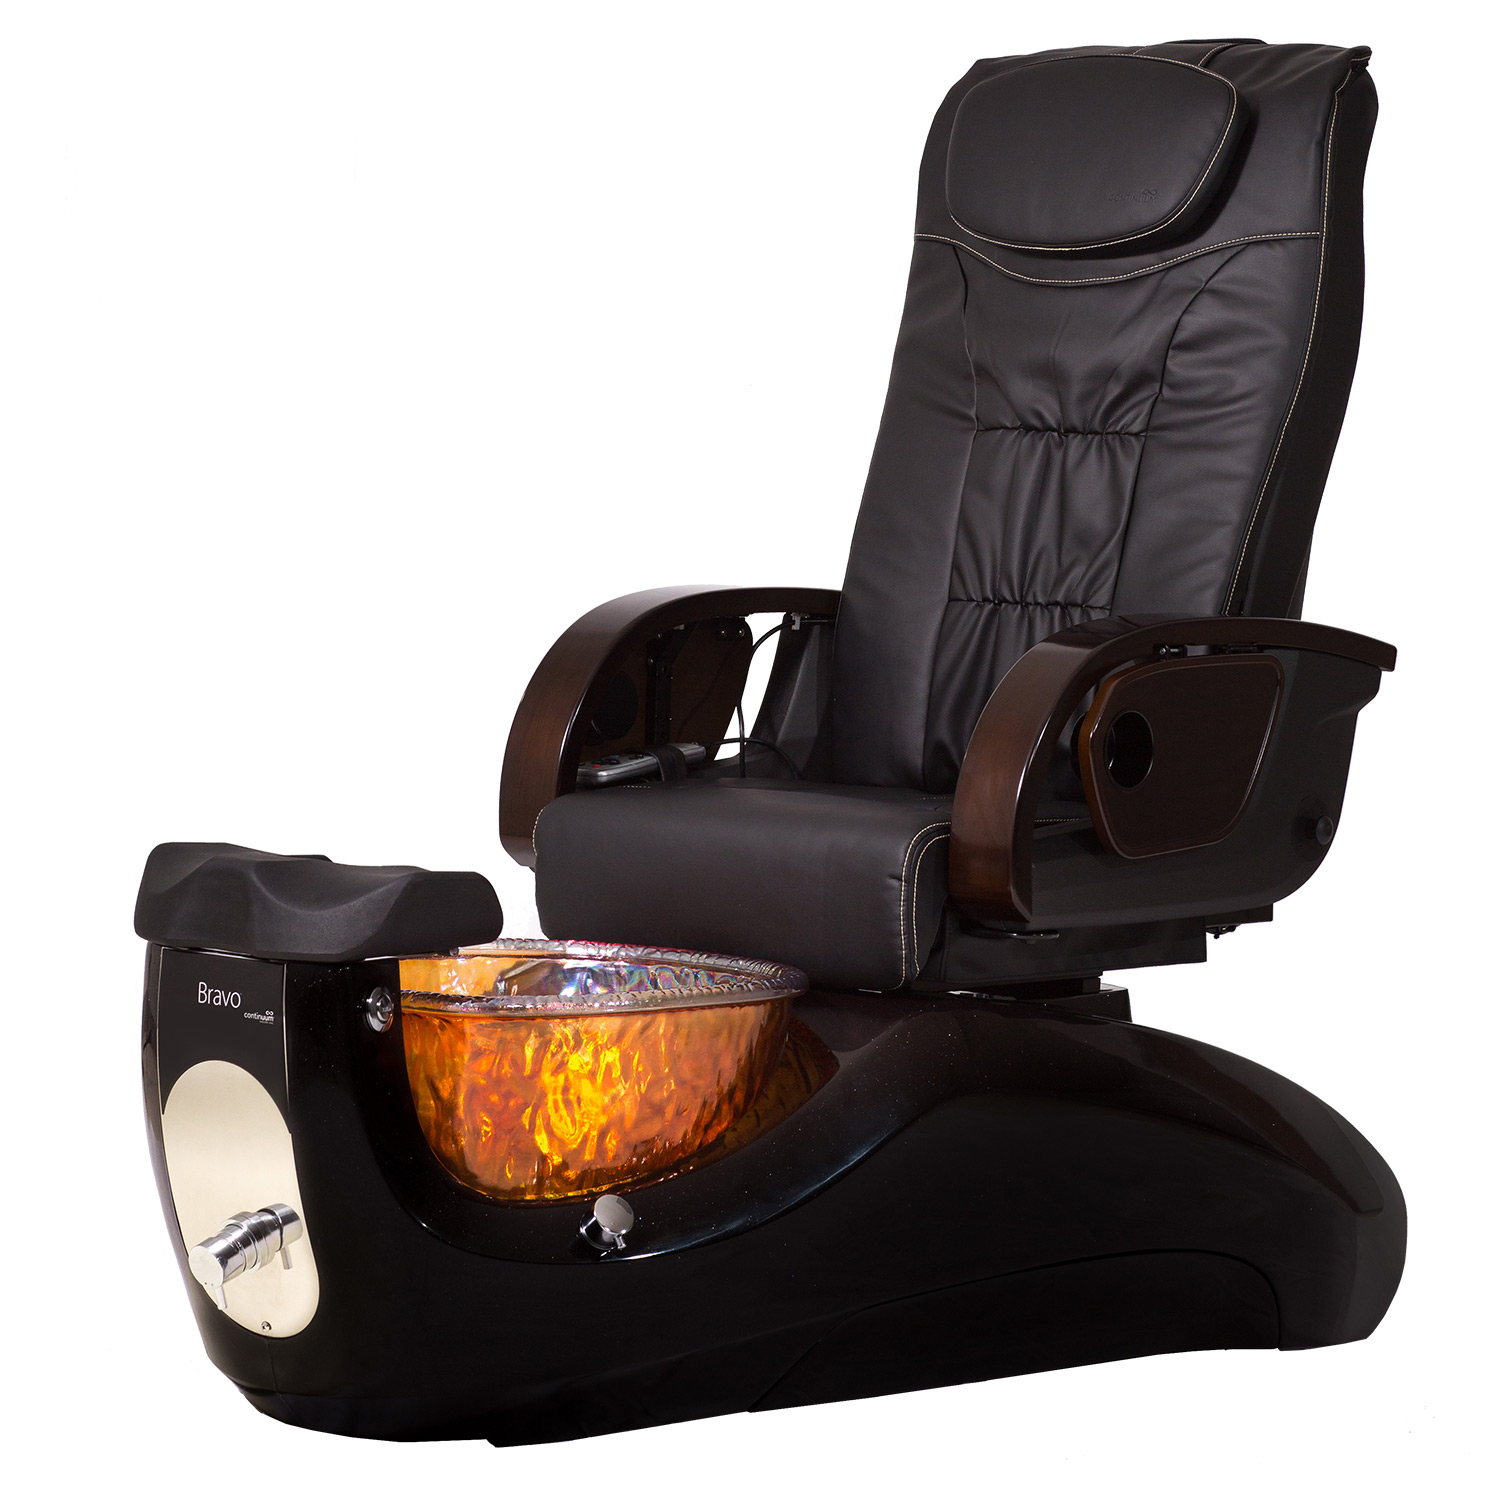 Continuum Bravo with Glass Basin Pedicure Spa Chair alternative product image 2